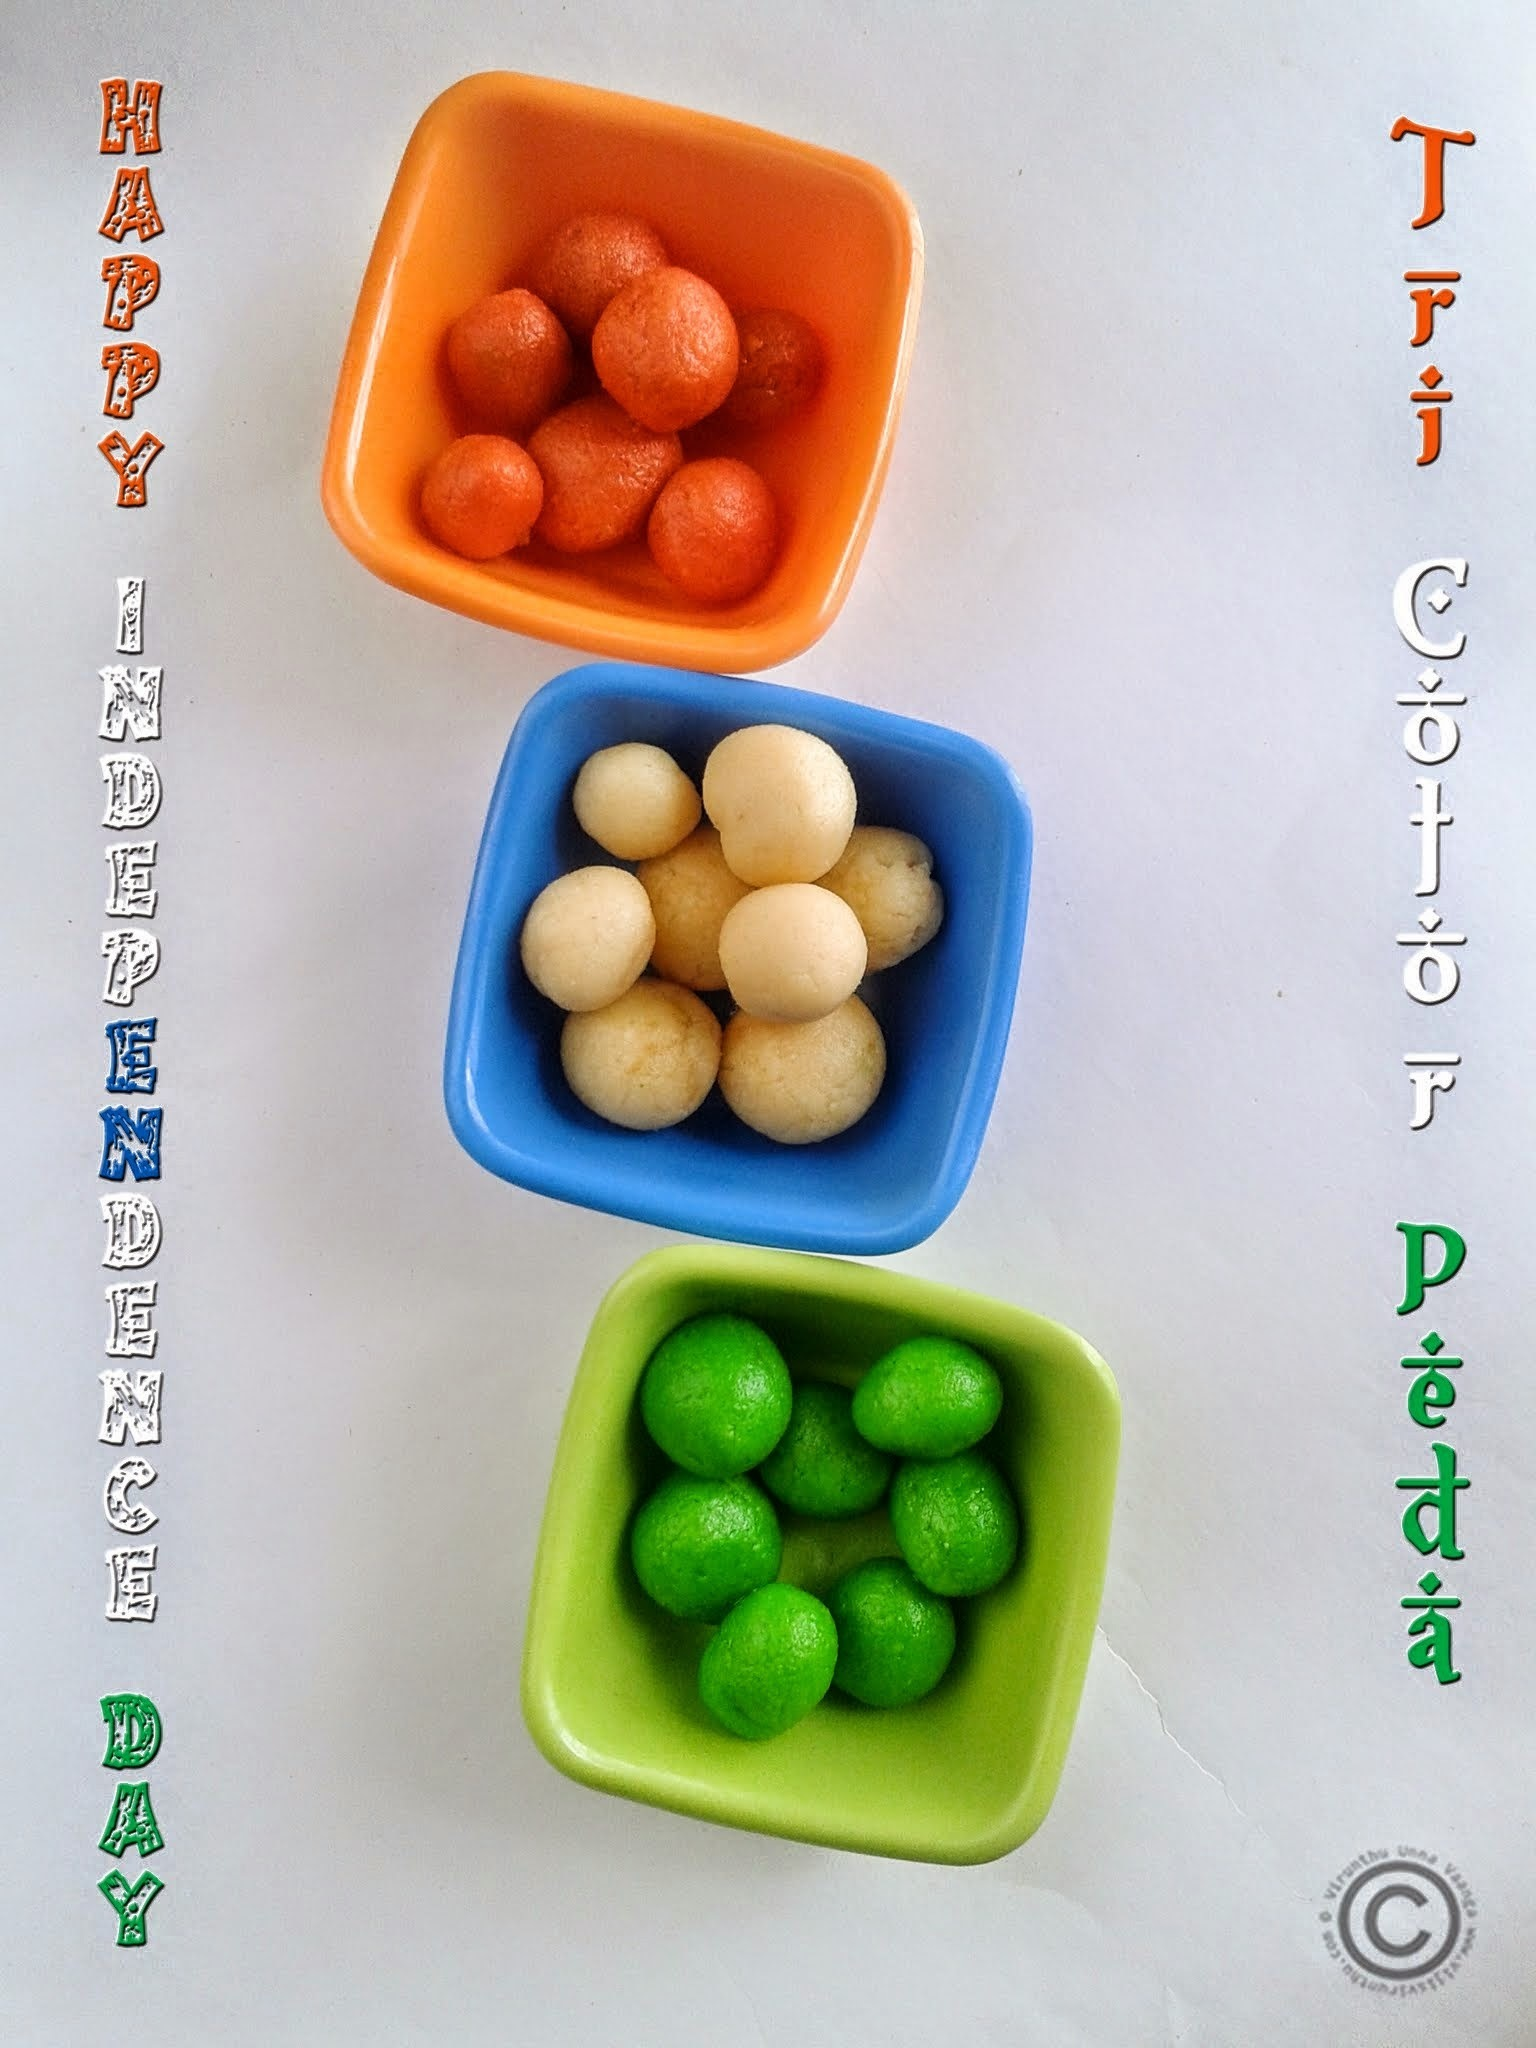 TRI COLOR PEDA I MILK PEDA WITH MILK POWDER I INDEPENDENCE DAY RECIPES